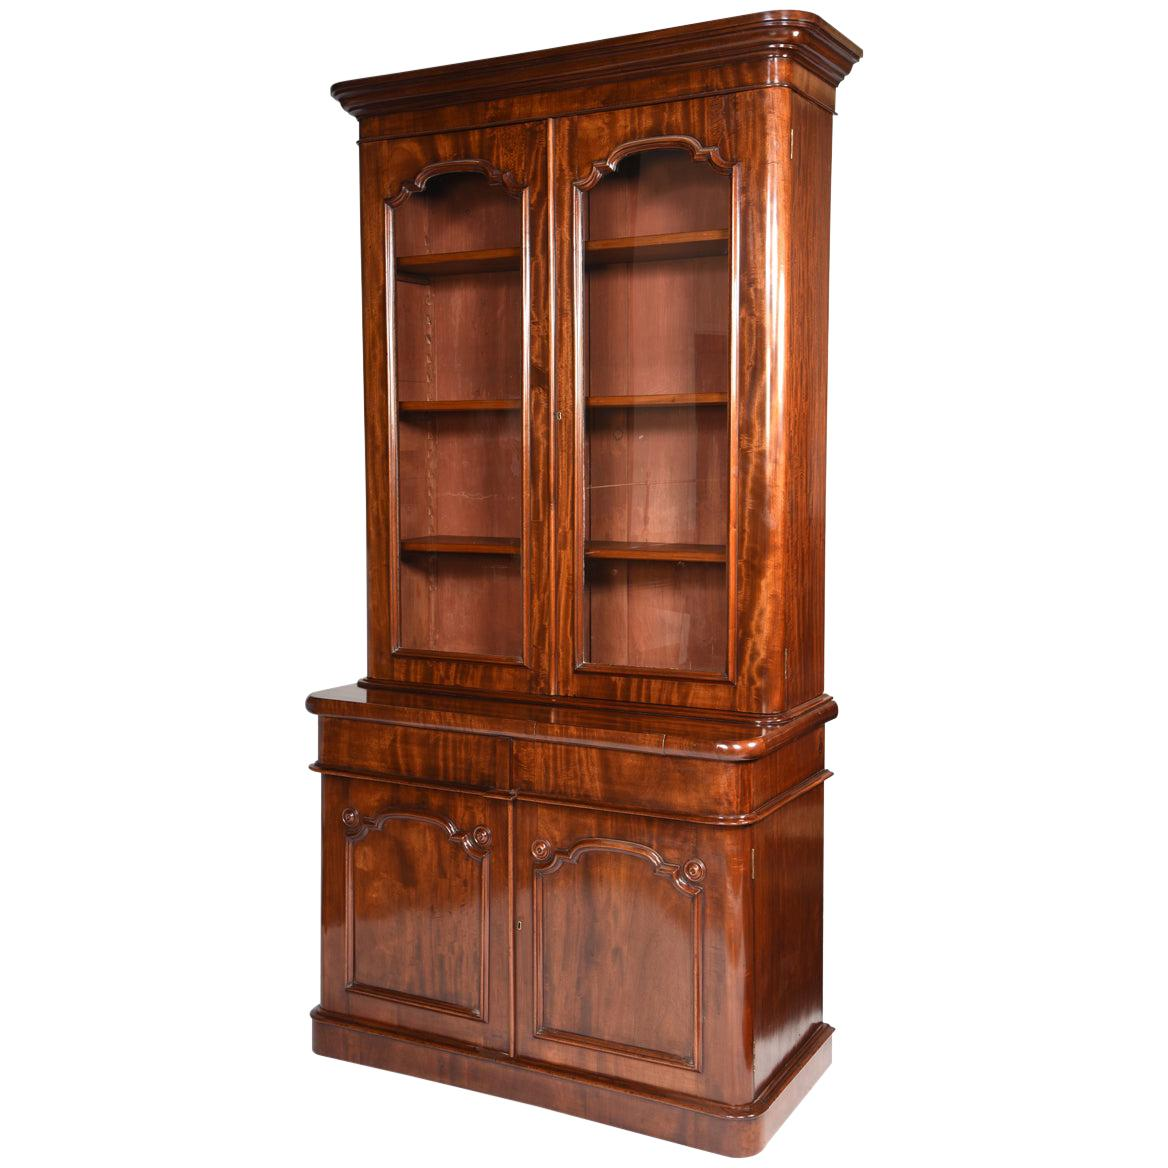 English Mahogany Two-Door Glazed Bookcase or China Cabinet, circa 1840